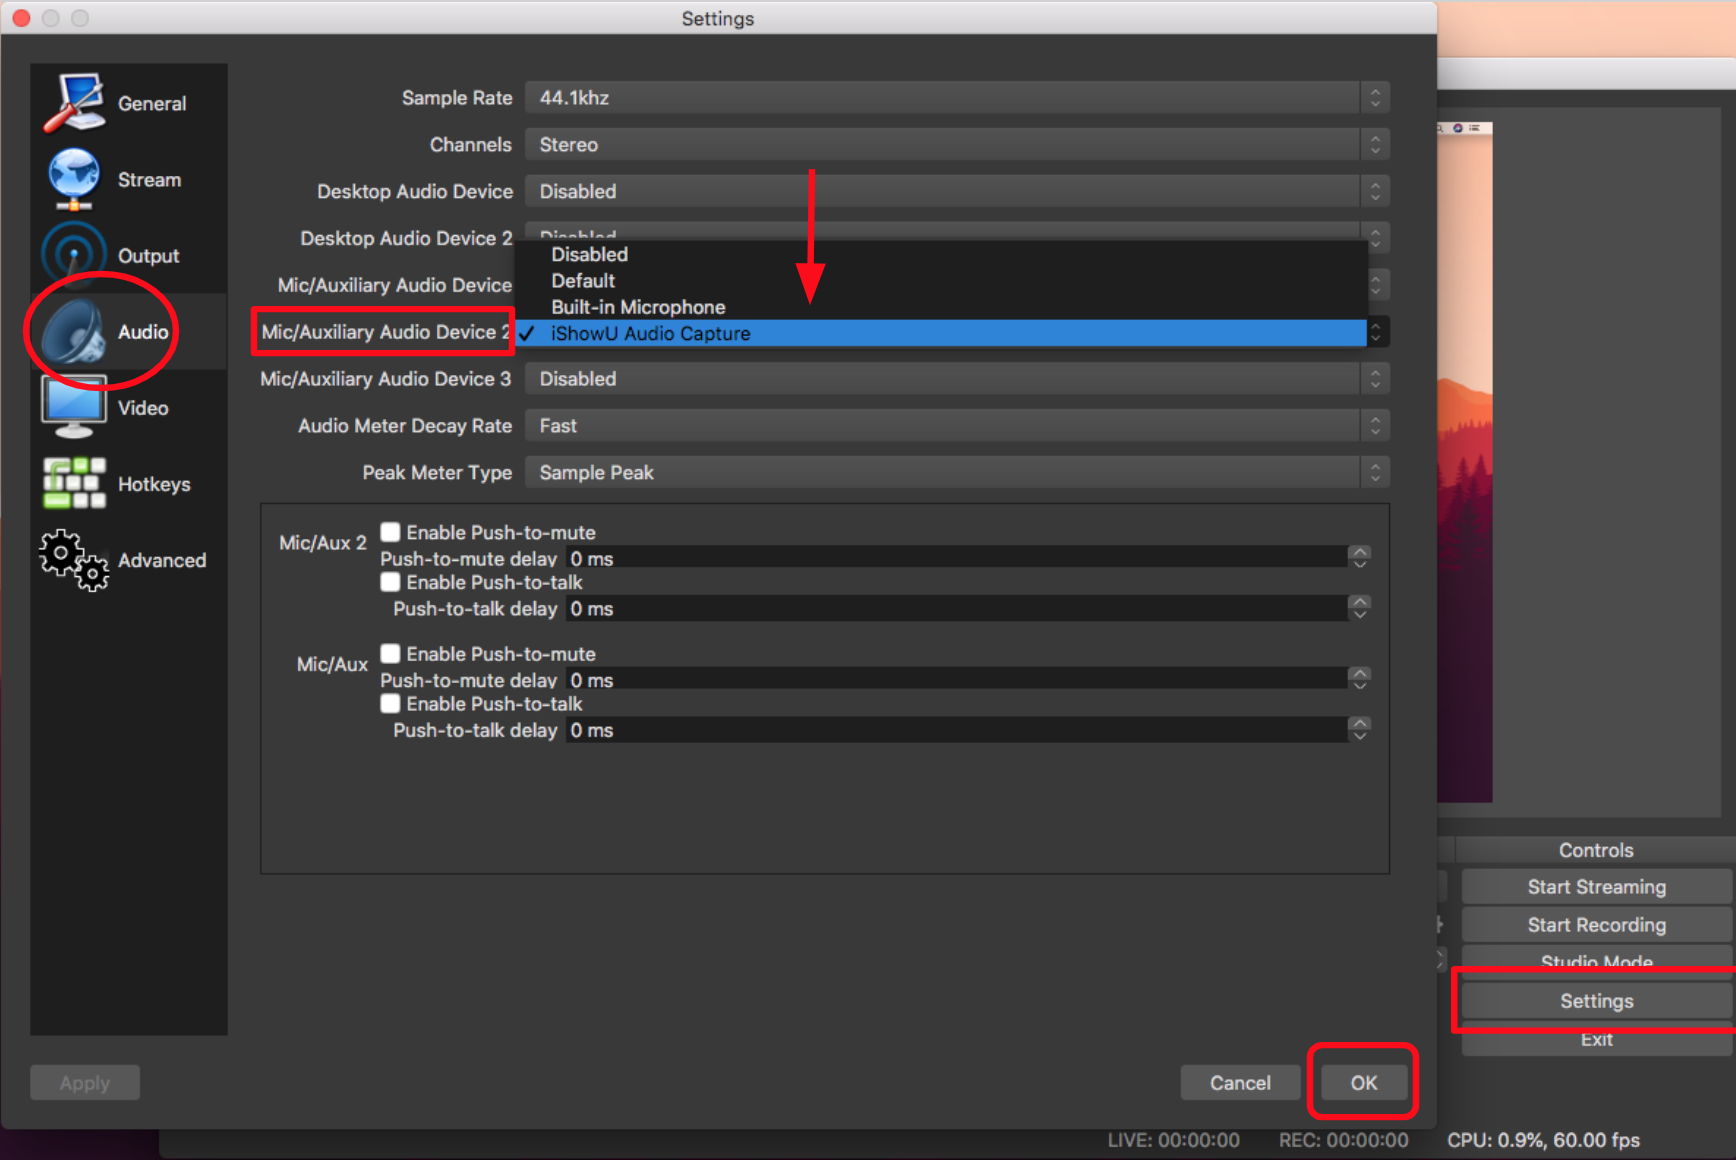 Image of OBS settings, selecting iShowU